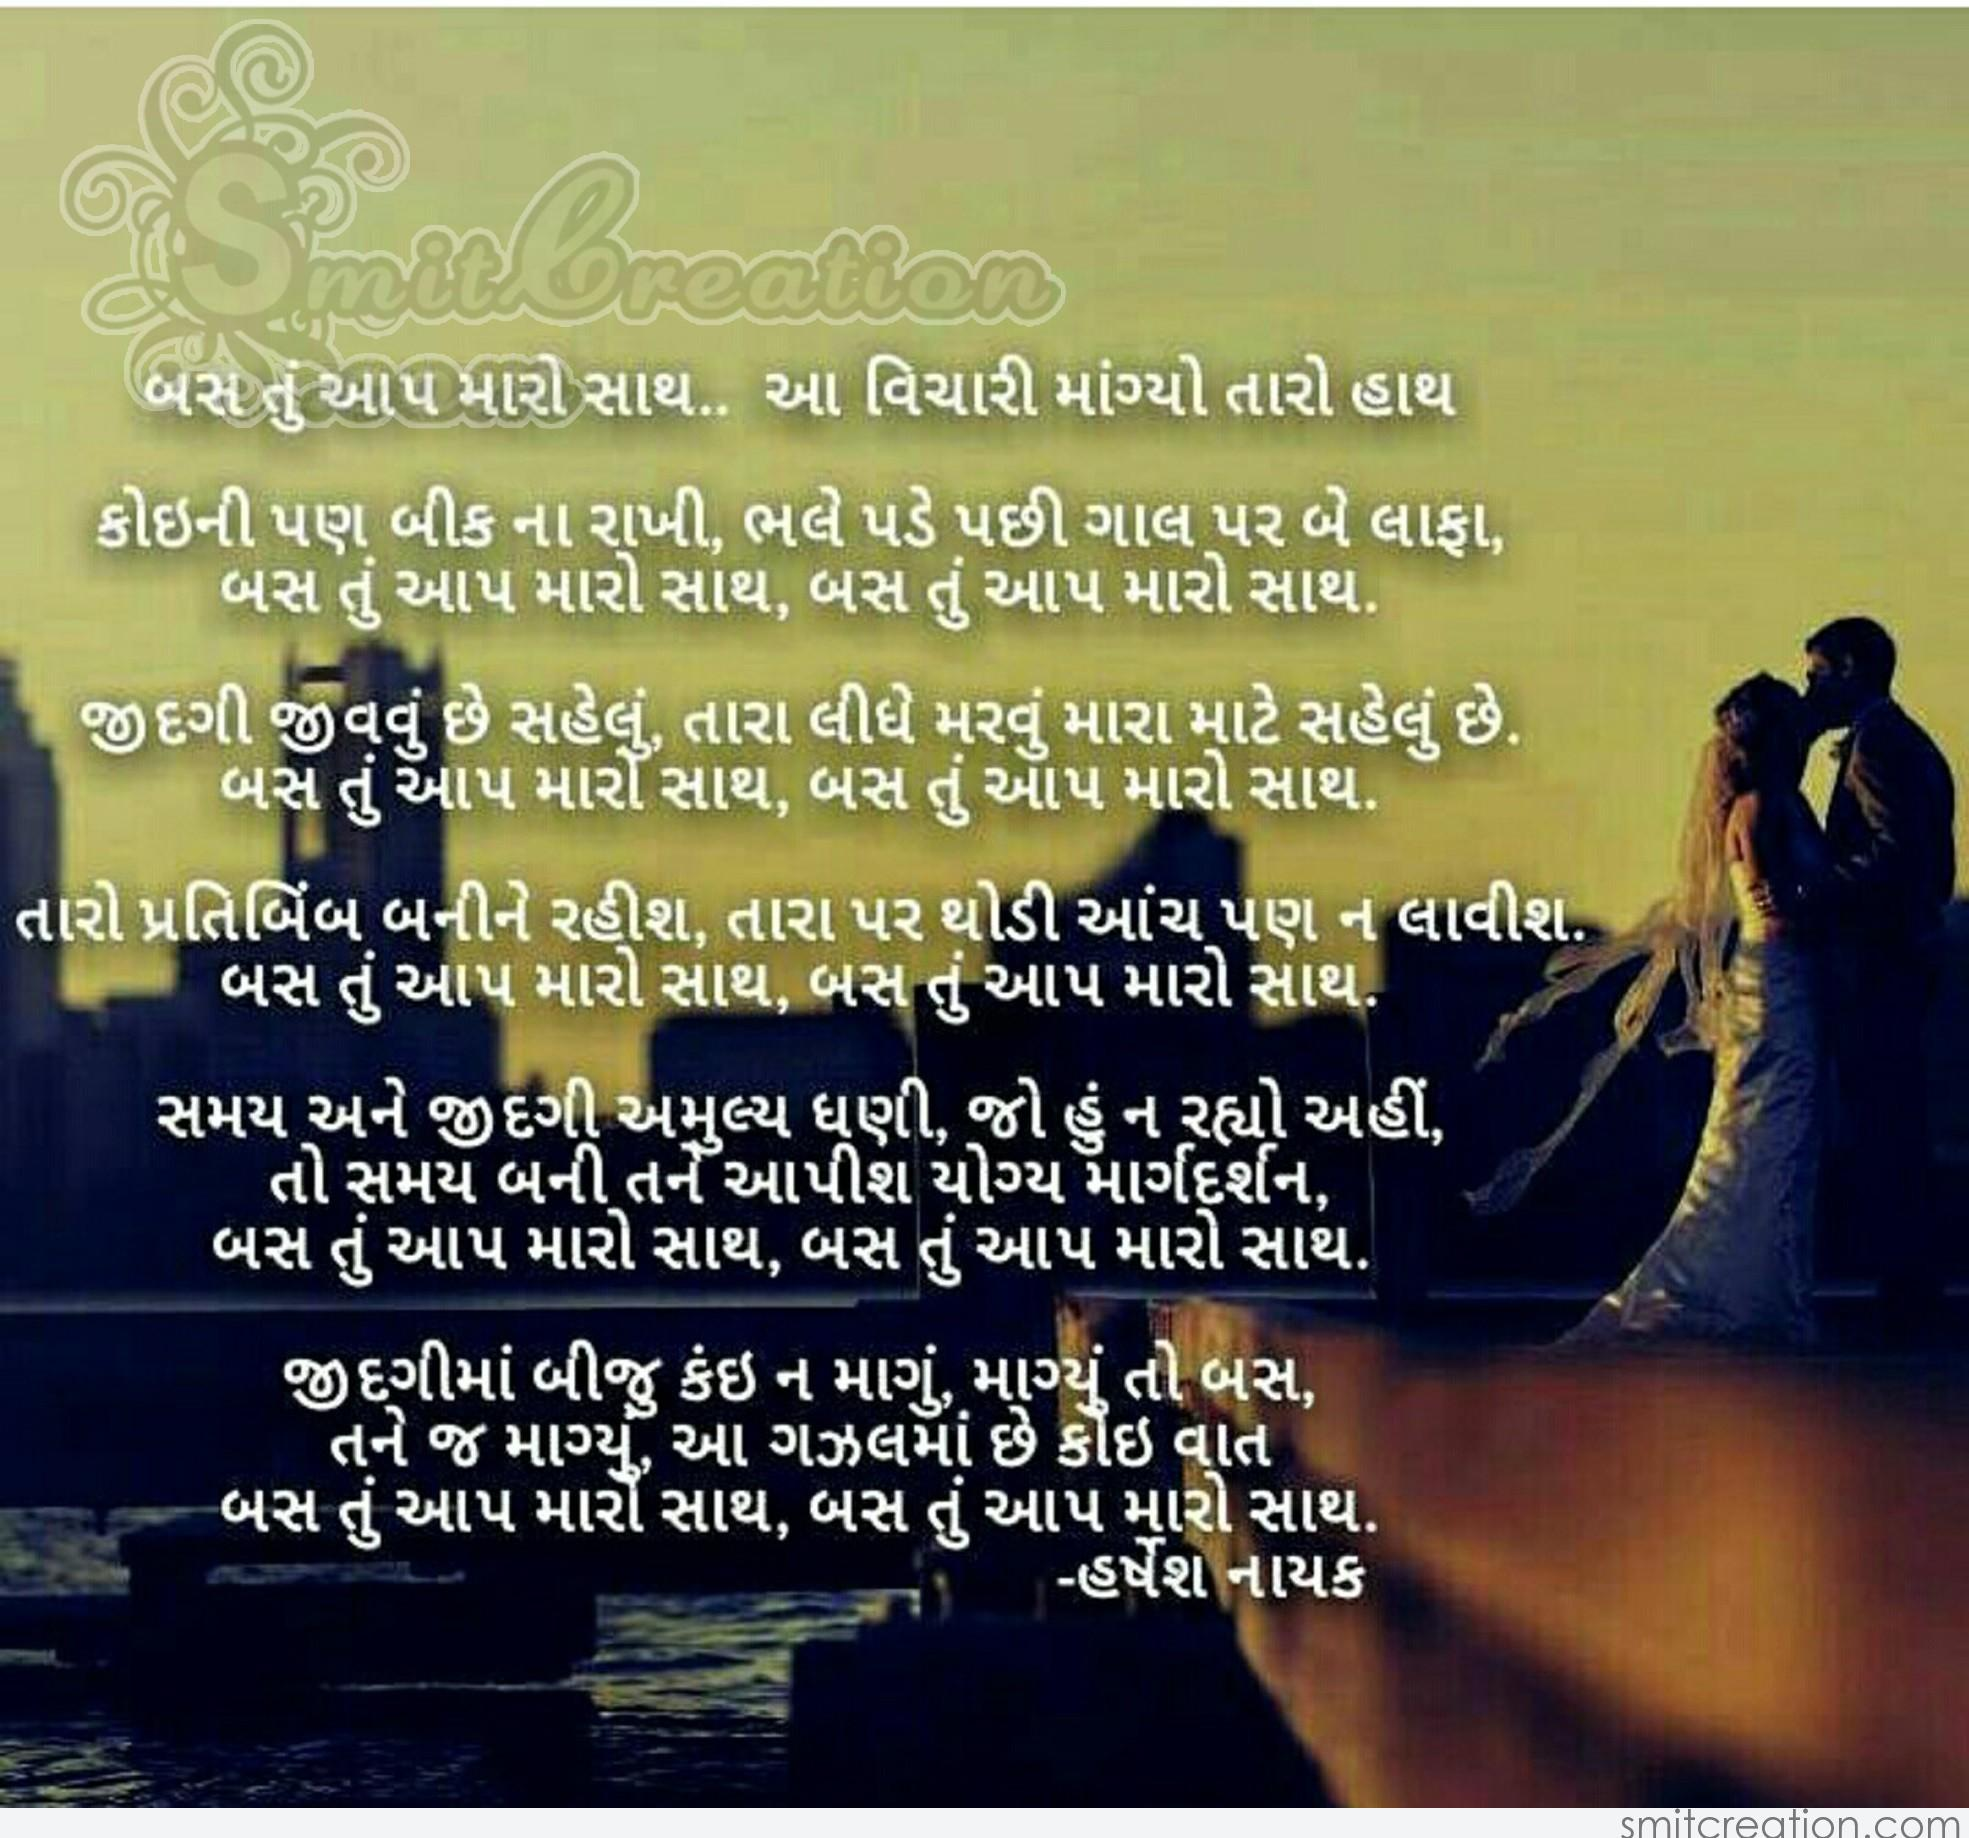 Gujarati Shayari and Graphics SmitCreation